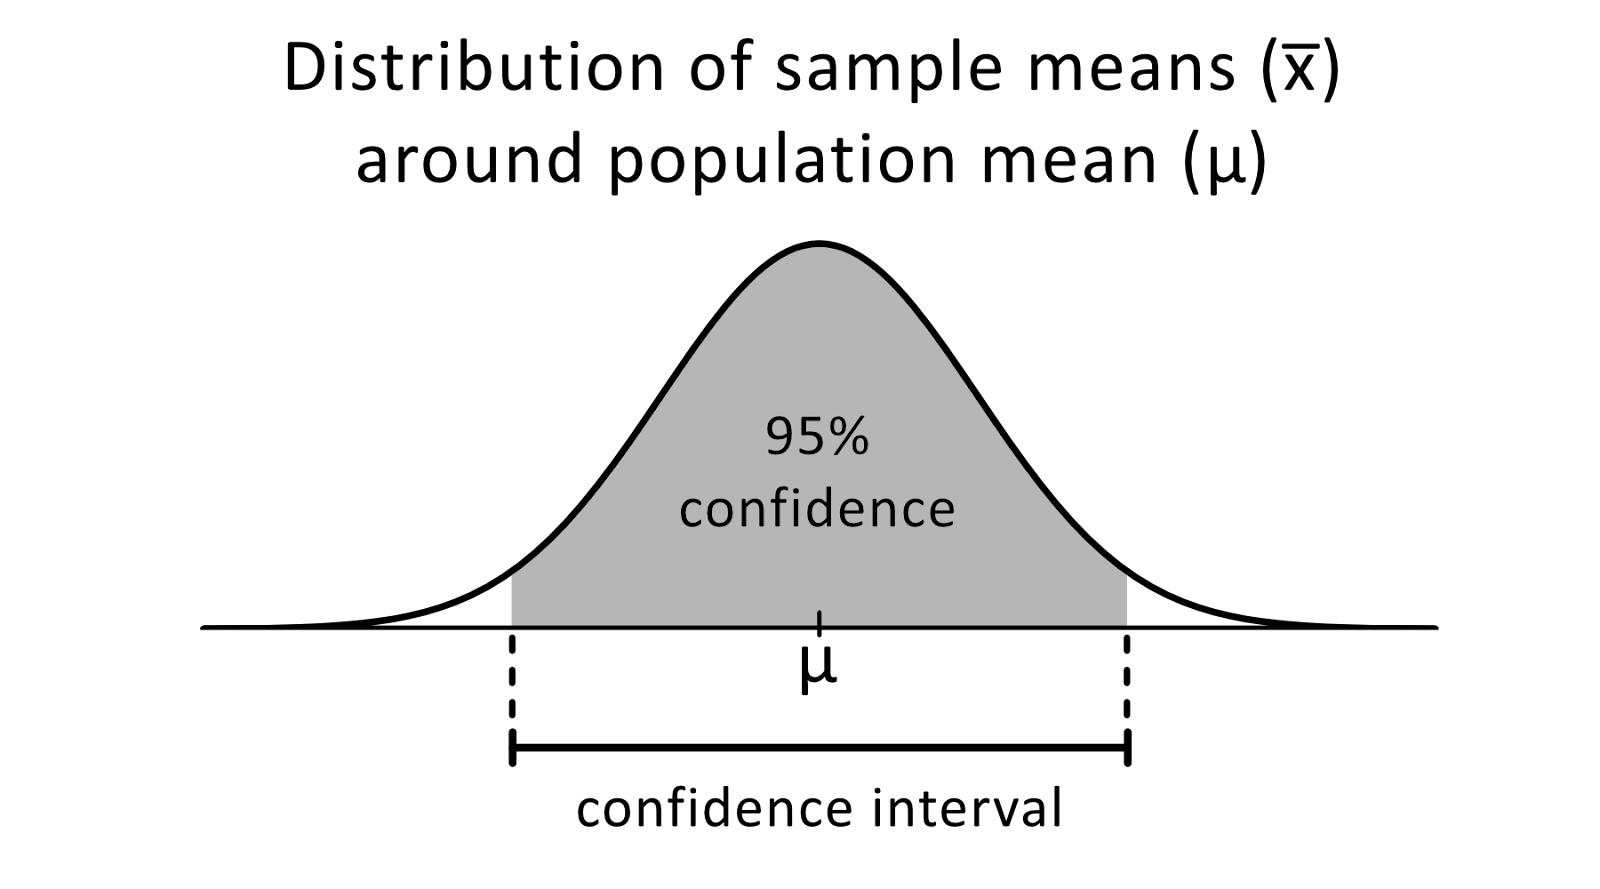 Confidence visualized in a graph